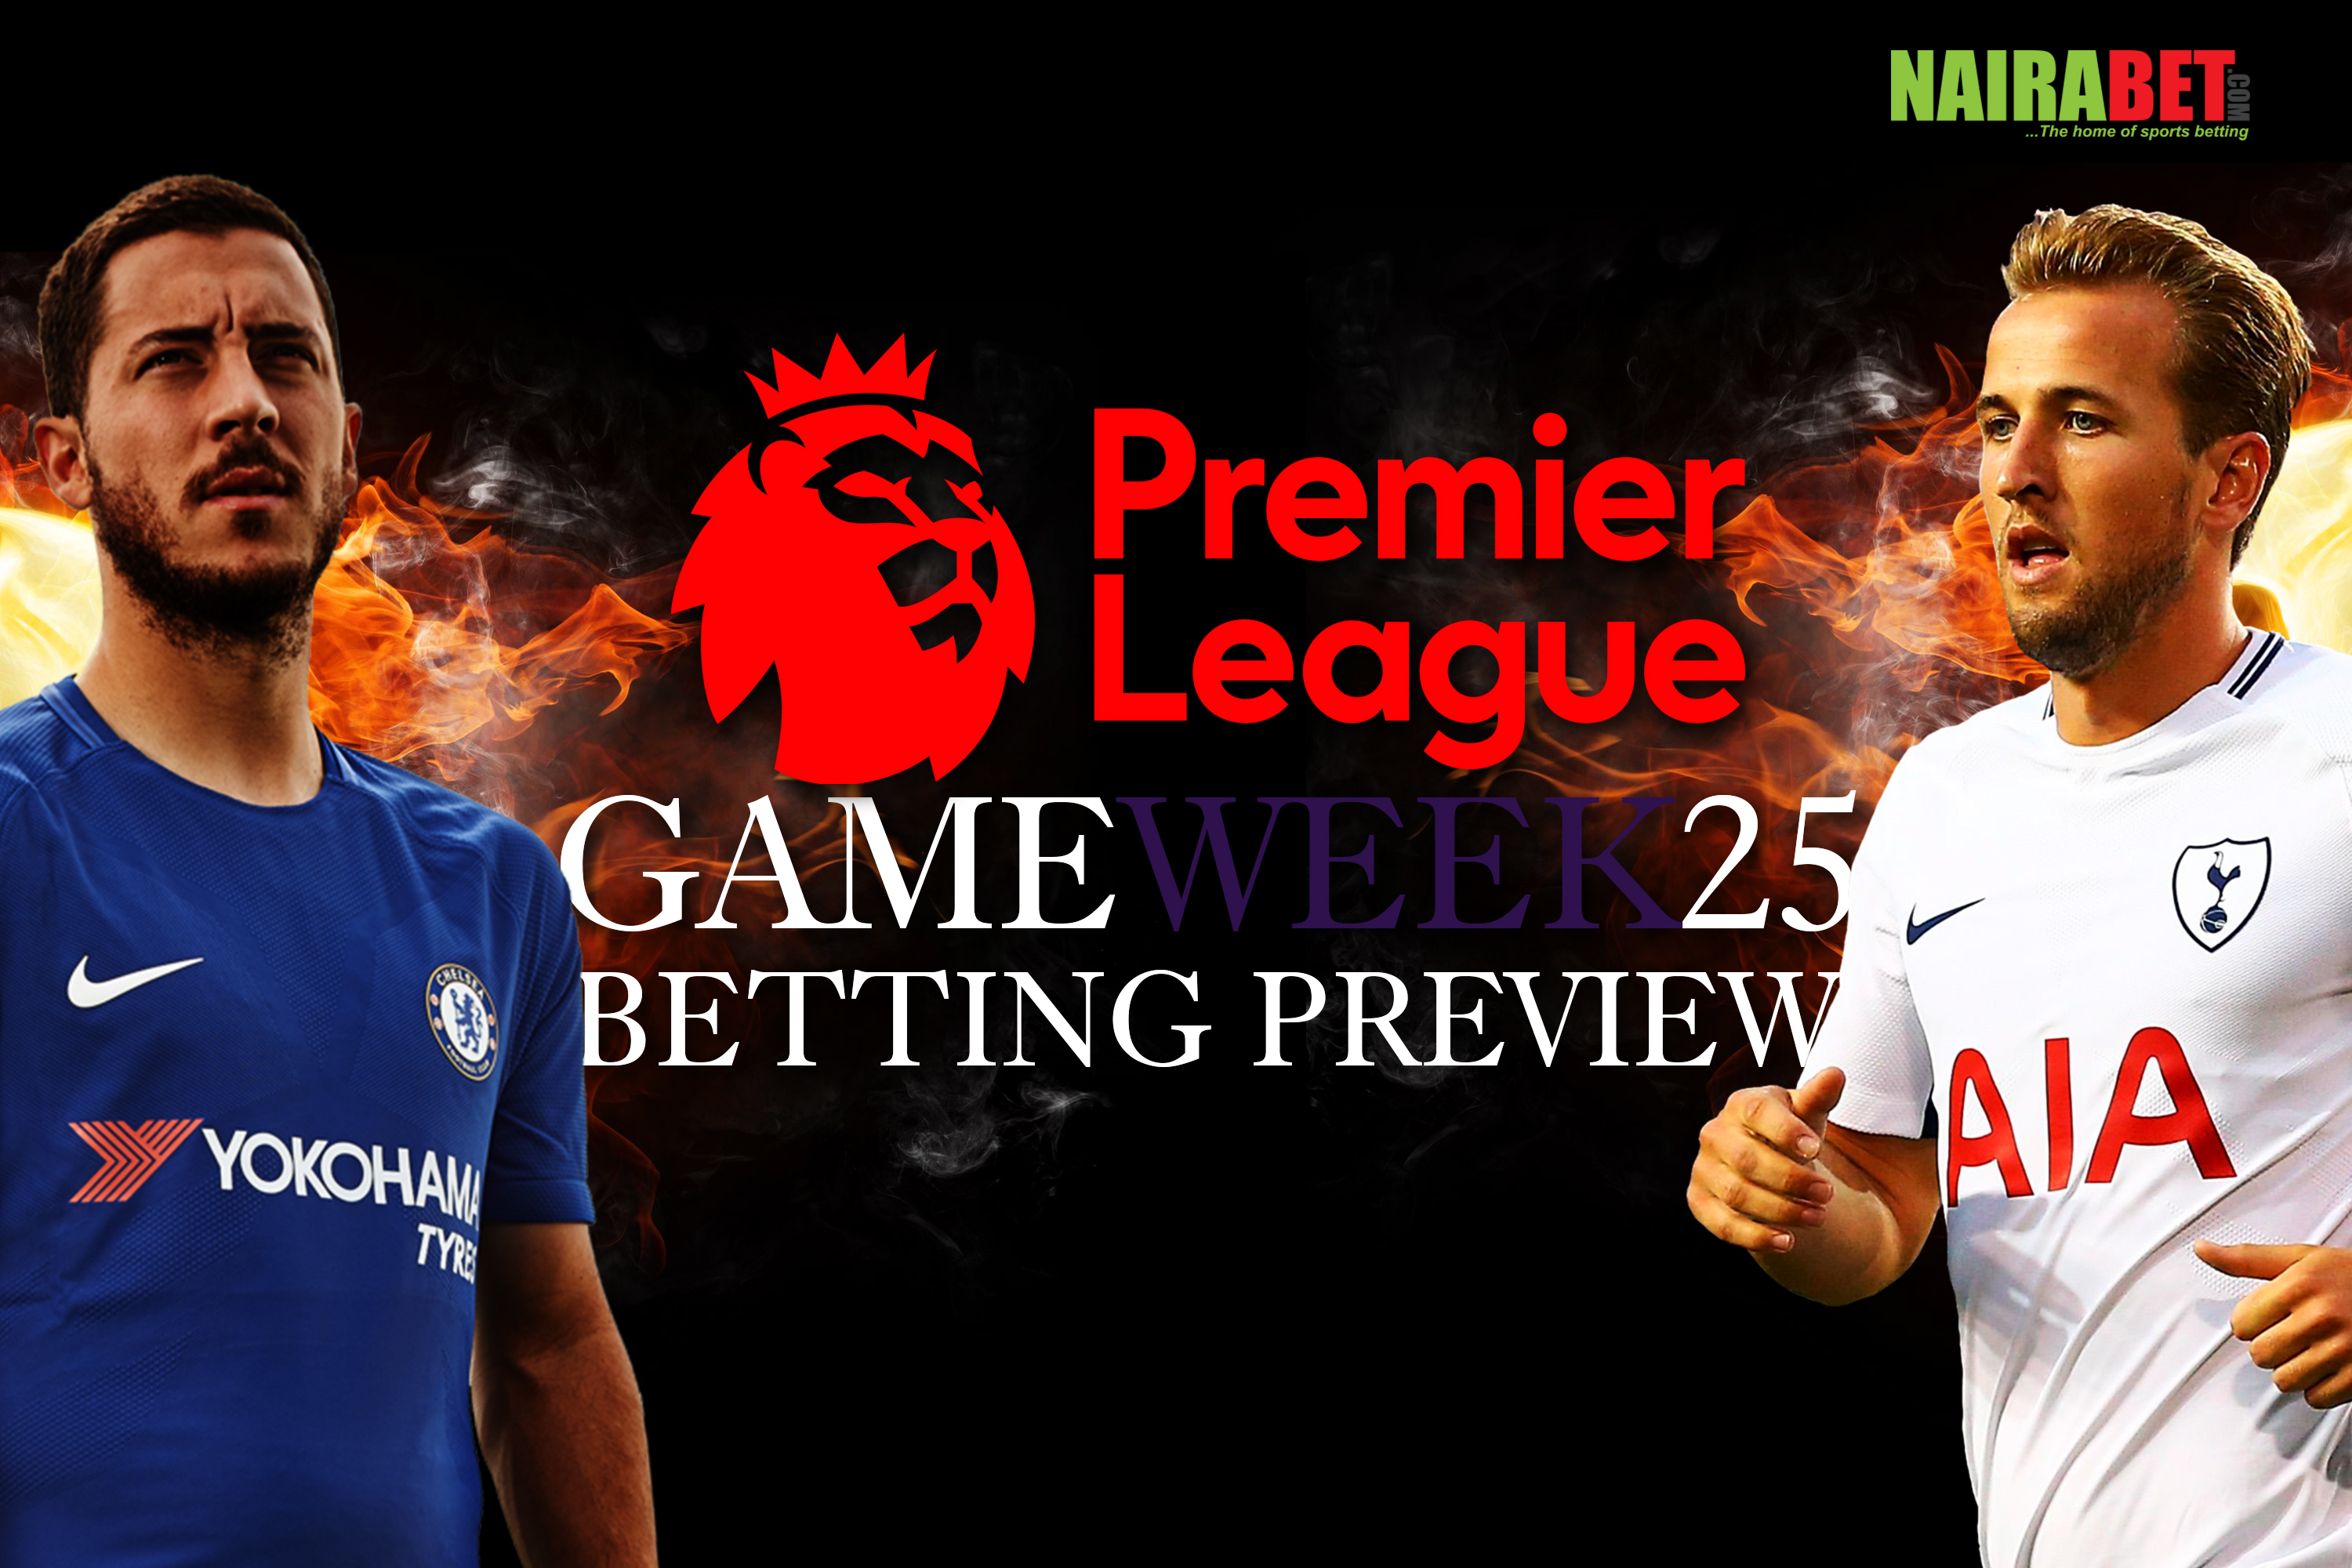 pl gameweek 25 preview